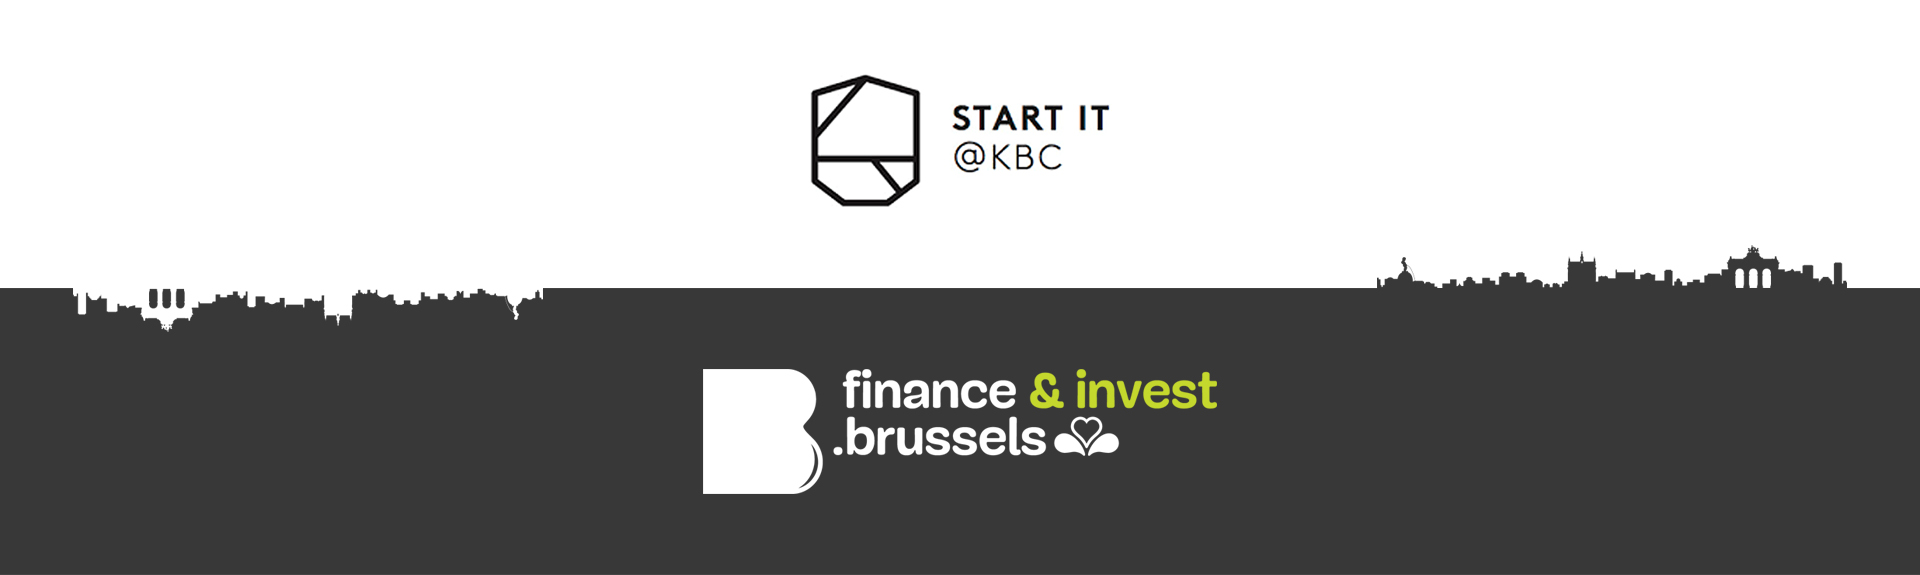 finance&invest.brussels wordt partner van Start it @KBC om de start-ups te steunen